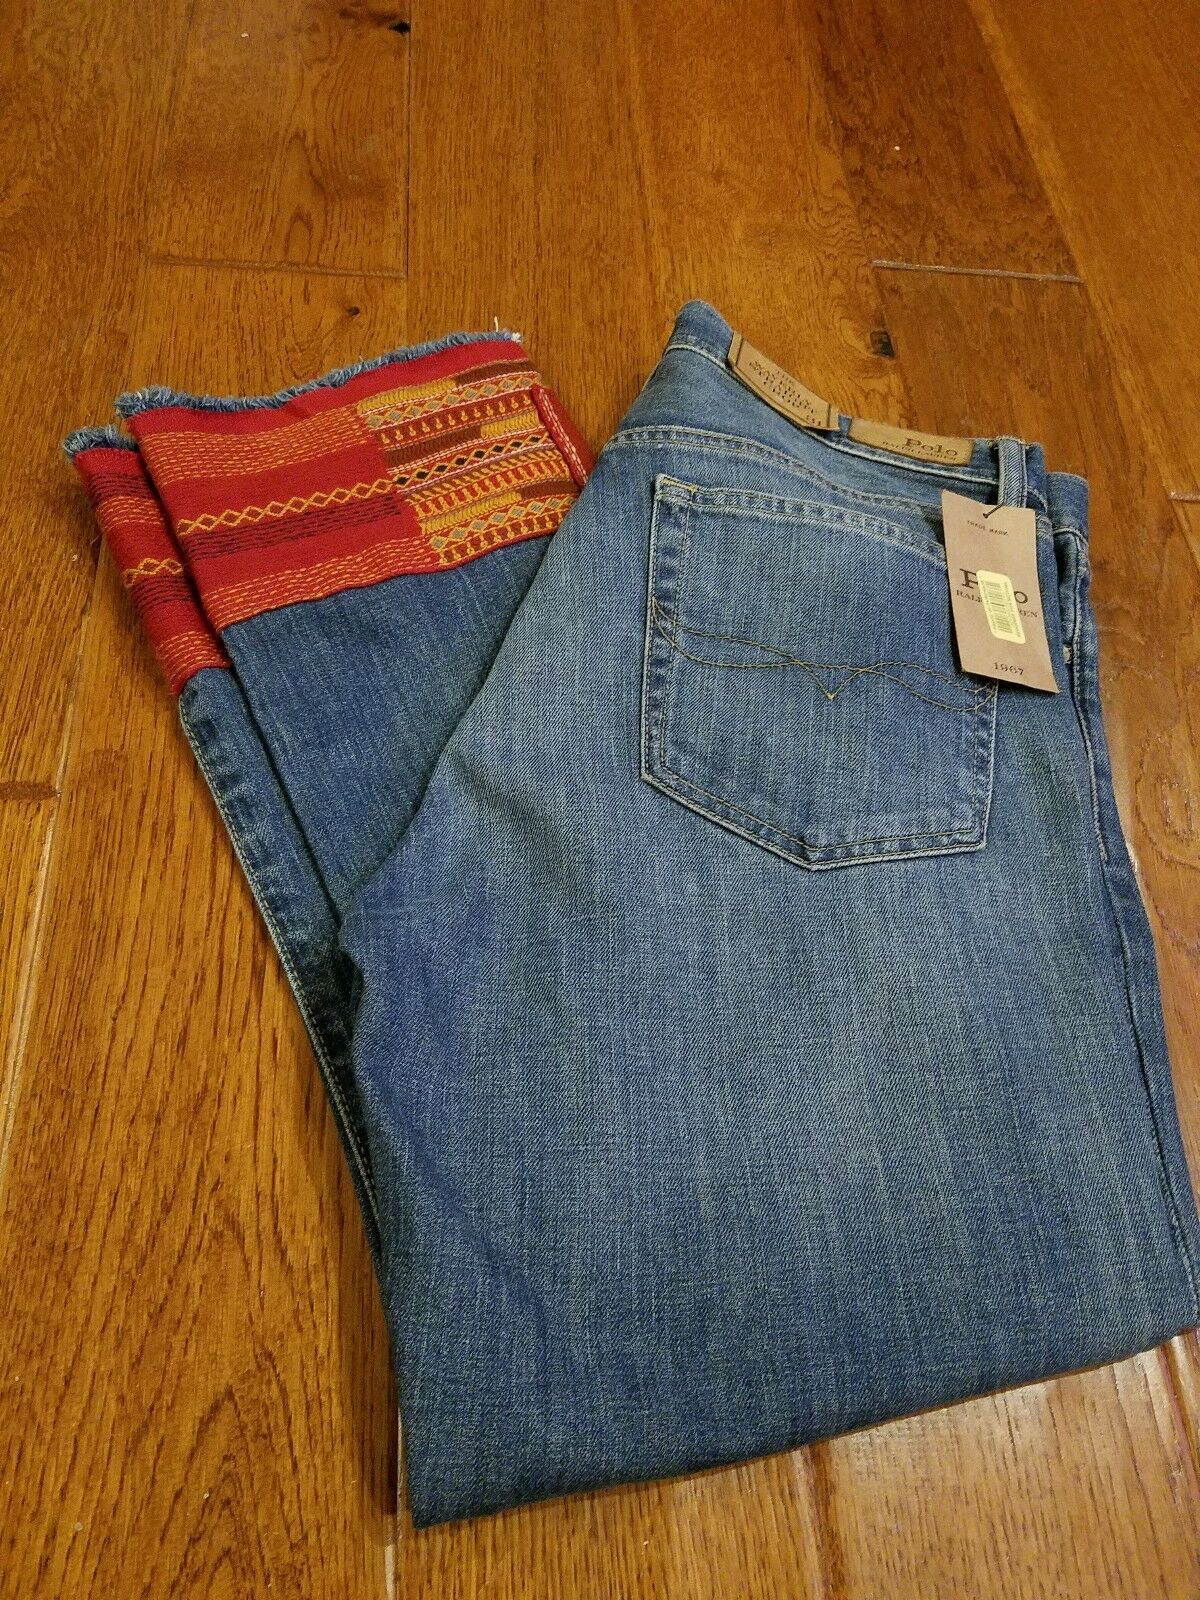 Polo Ralph Lauren 'The Waverly' Embroidered Crop Jeans Womens Size 29 NWT  298